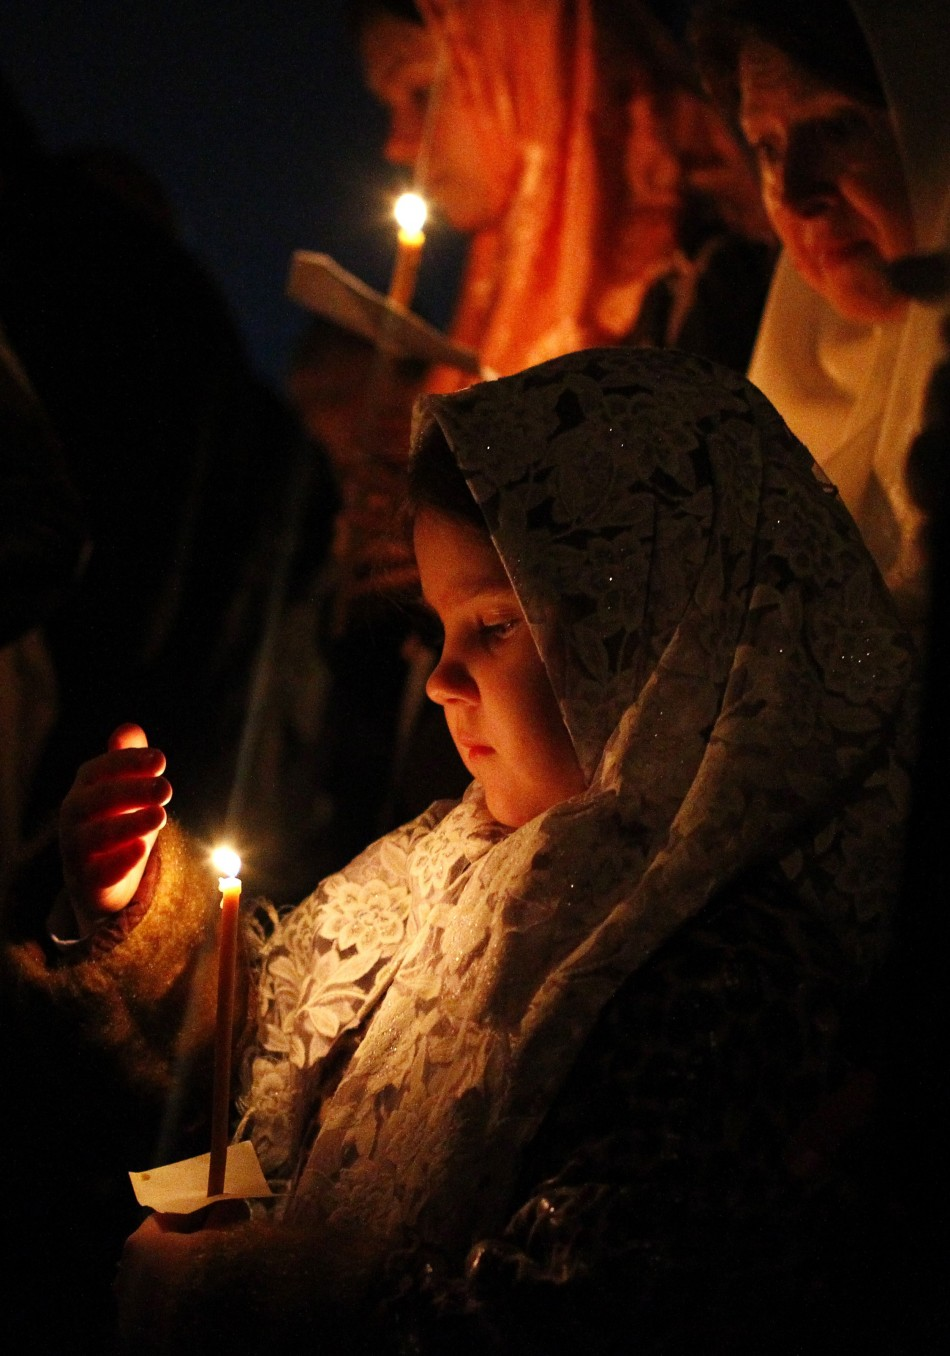 Russian Orthodox Old Believers hold candles during an Easter service at a church in Moscow